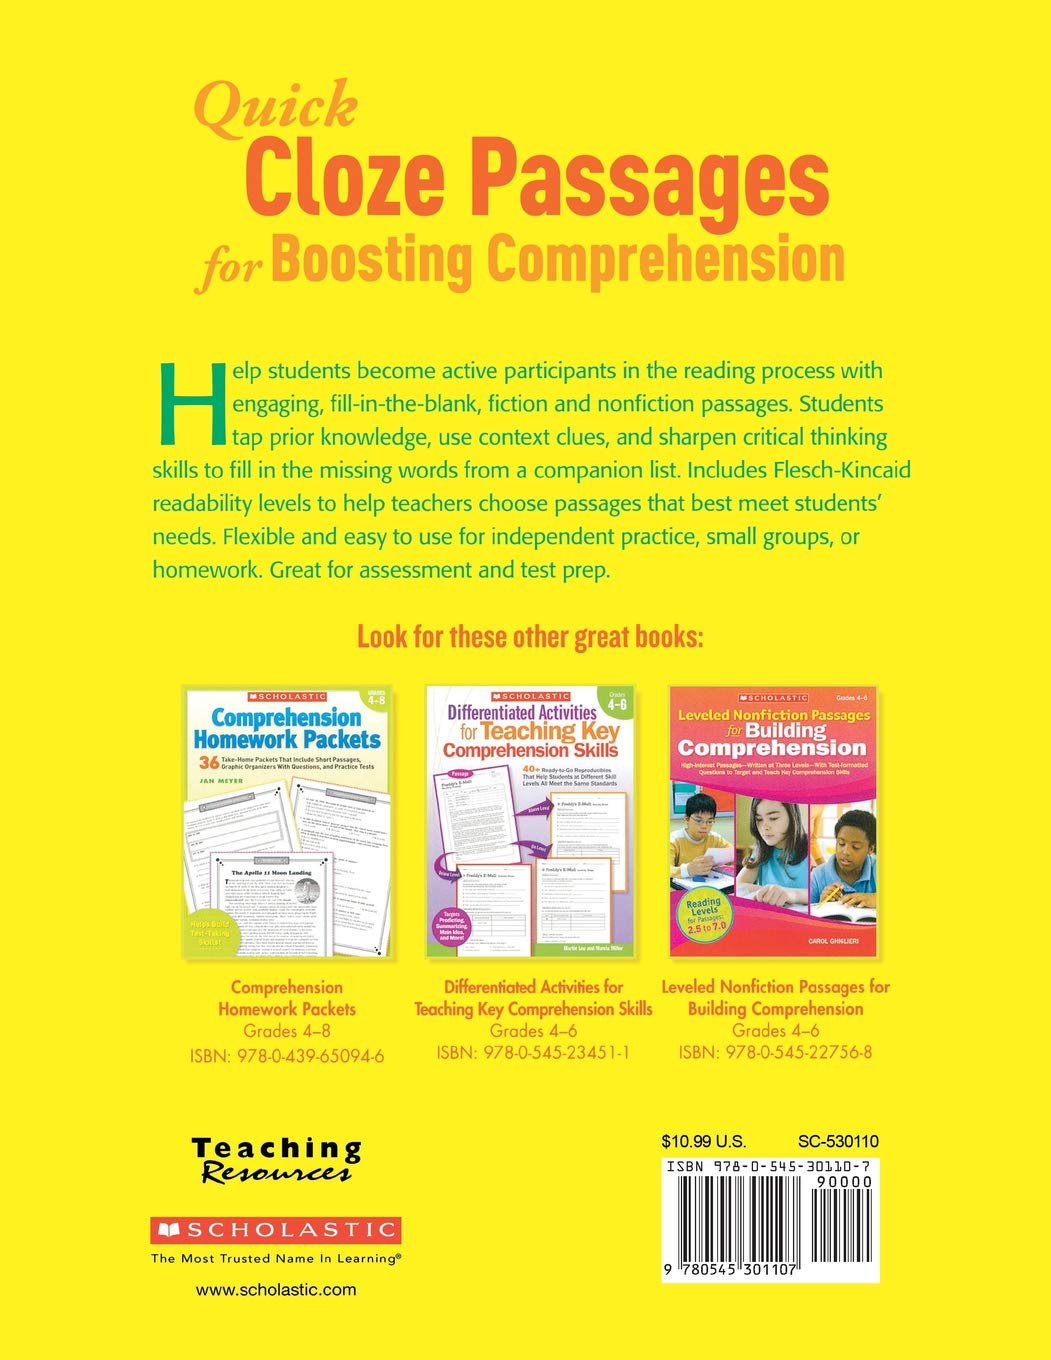 Amazon com: Quick Cloze Passages for Boosting Comprehension 4-6: 40